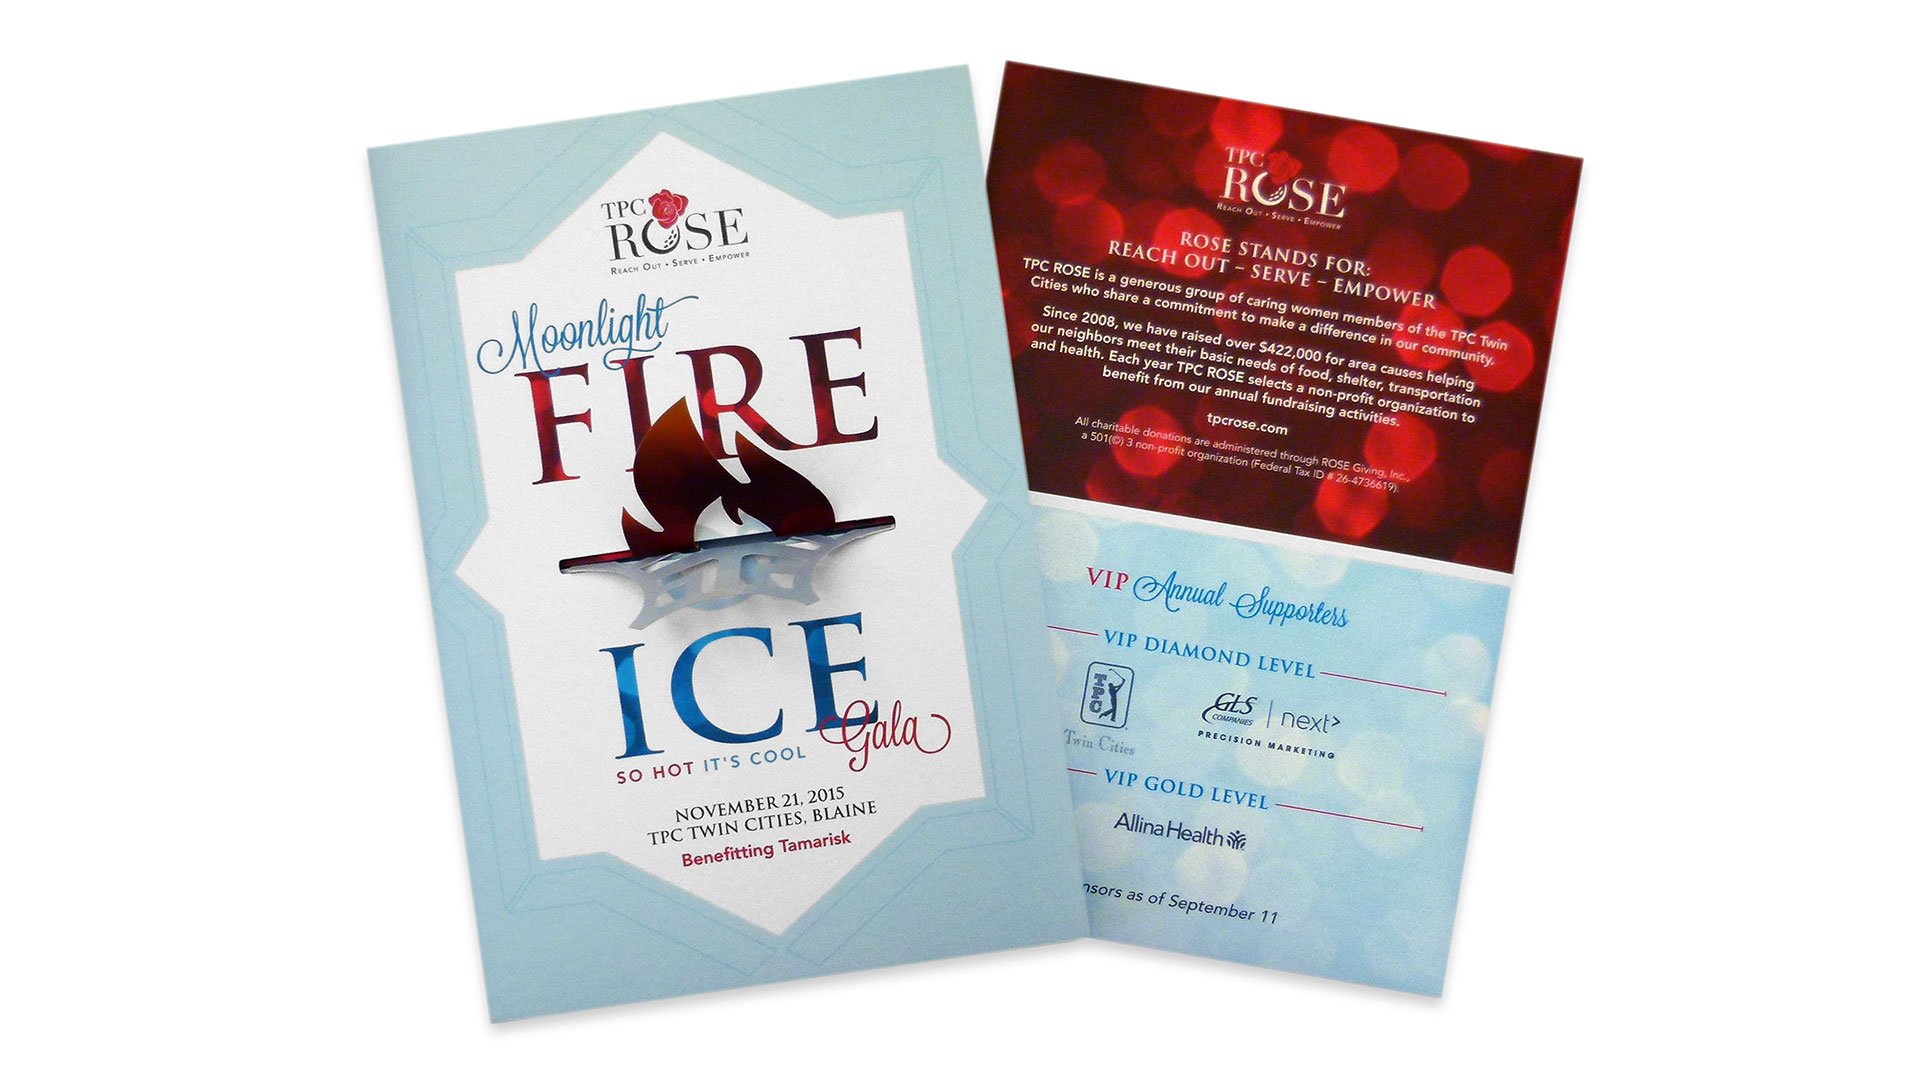 TPC ROSE Fire Ice Moonlight Gala Invitations